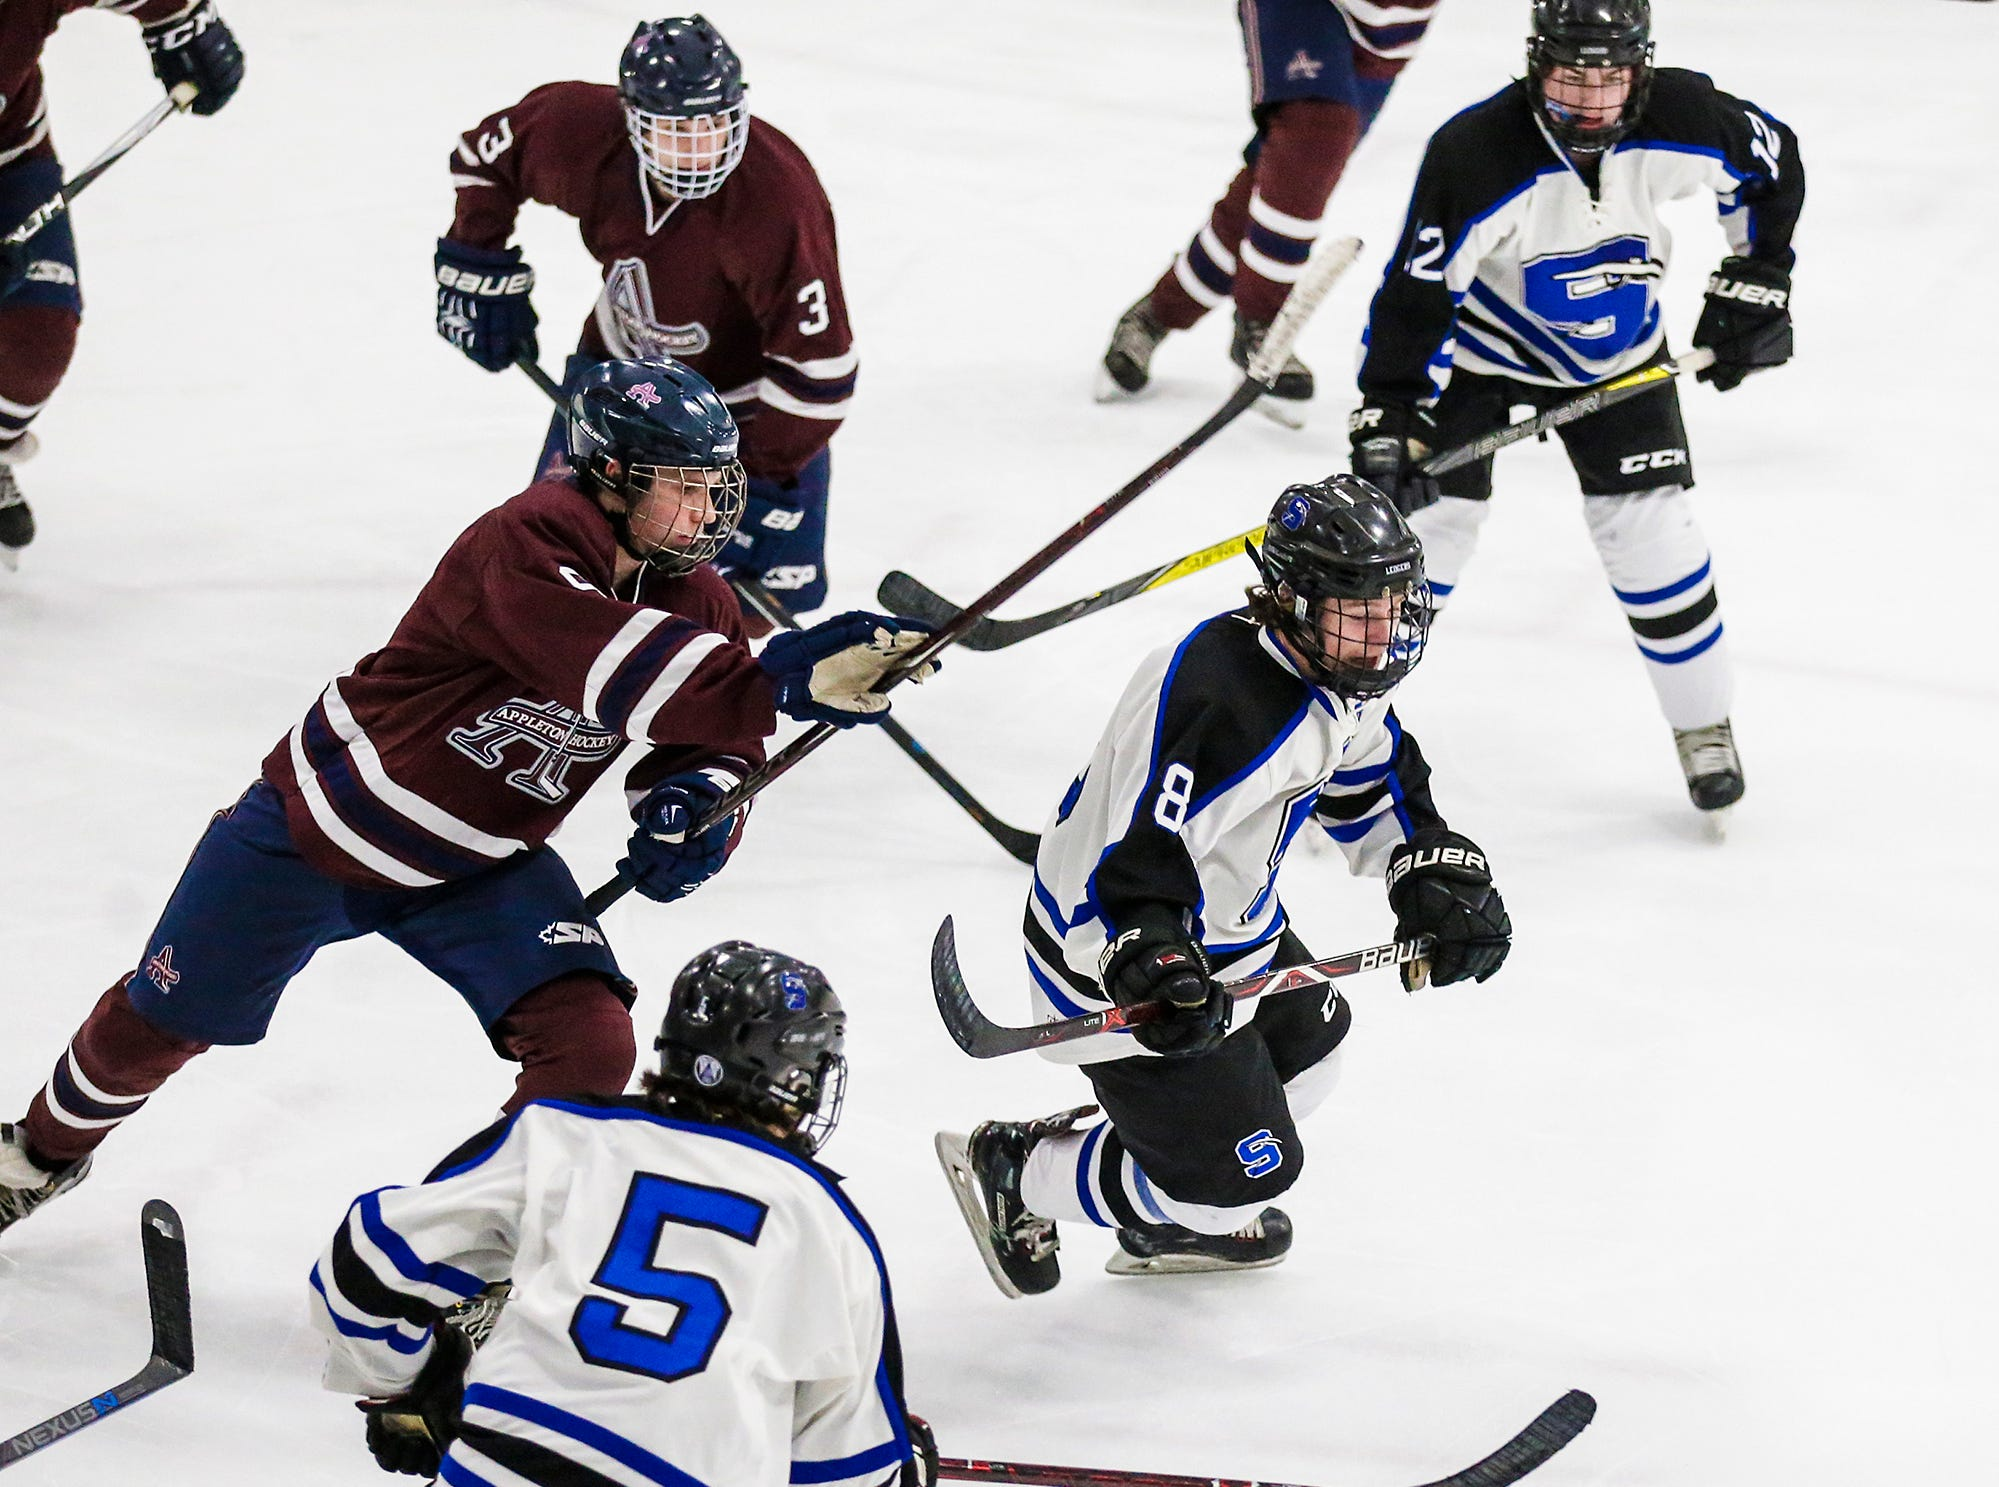 St. Mary's Springs Academy co-op hockey's Zach Welsch (8) and Brady Welsch (5) go after the puck against Appleton United during their game Thursday, November 29, 2018 played in Fond du Lac. Springs won the game 8-1. Doug Raflik/USA TODAY NETWORK-Wisconsin